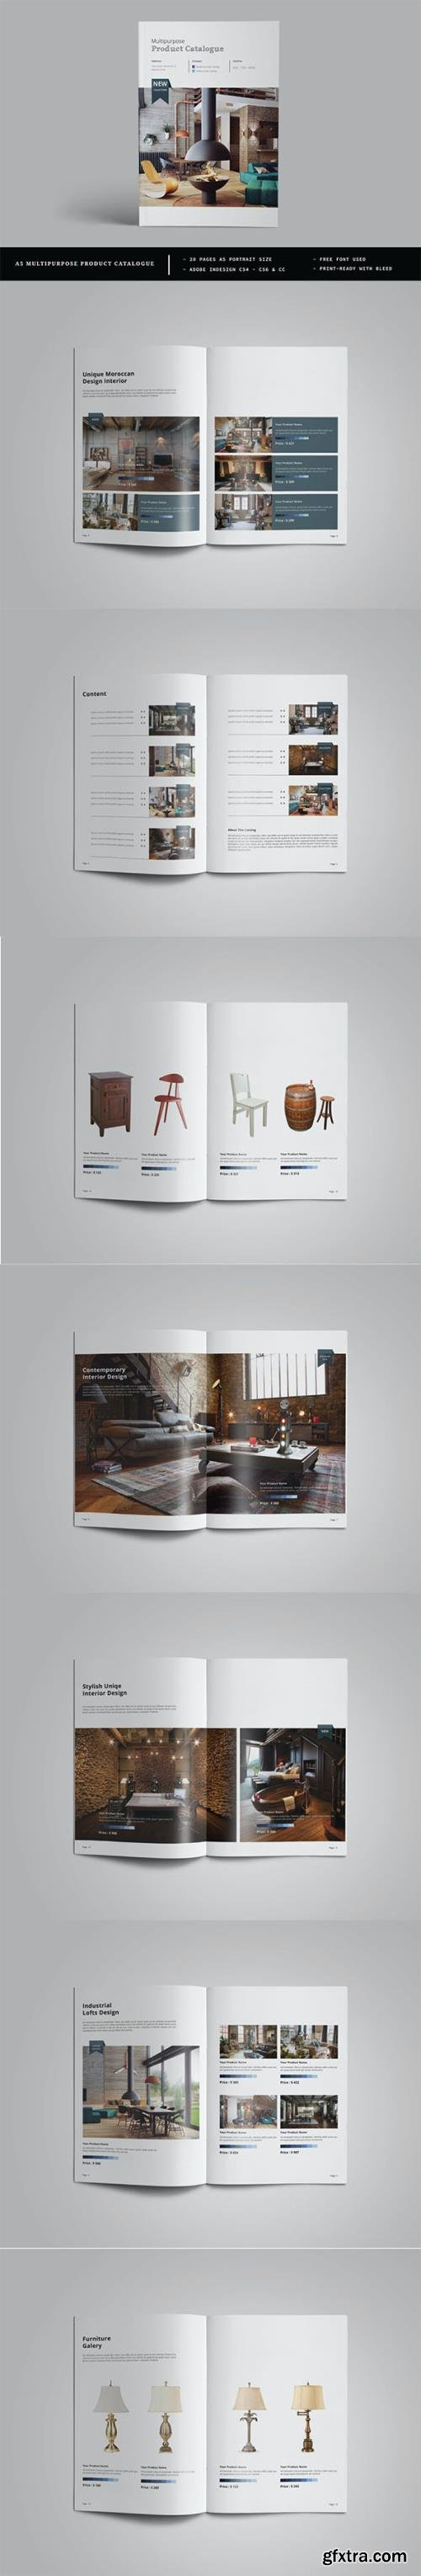 A5 Multipurpose Catalogs / Brochure Template